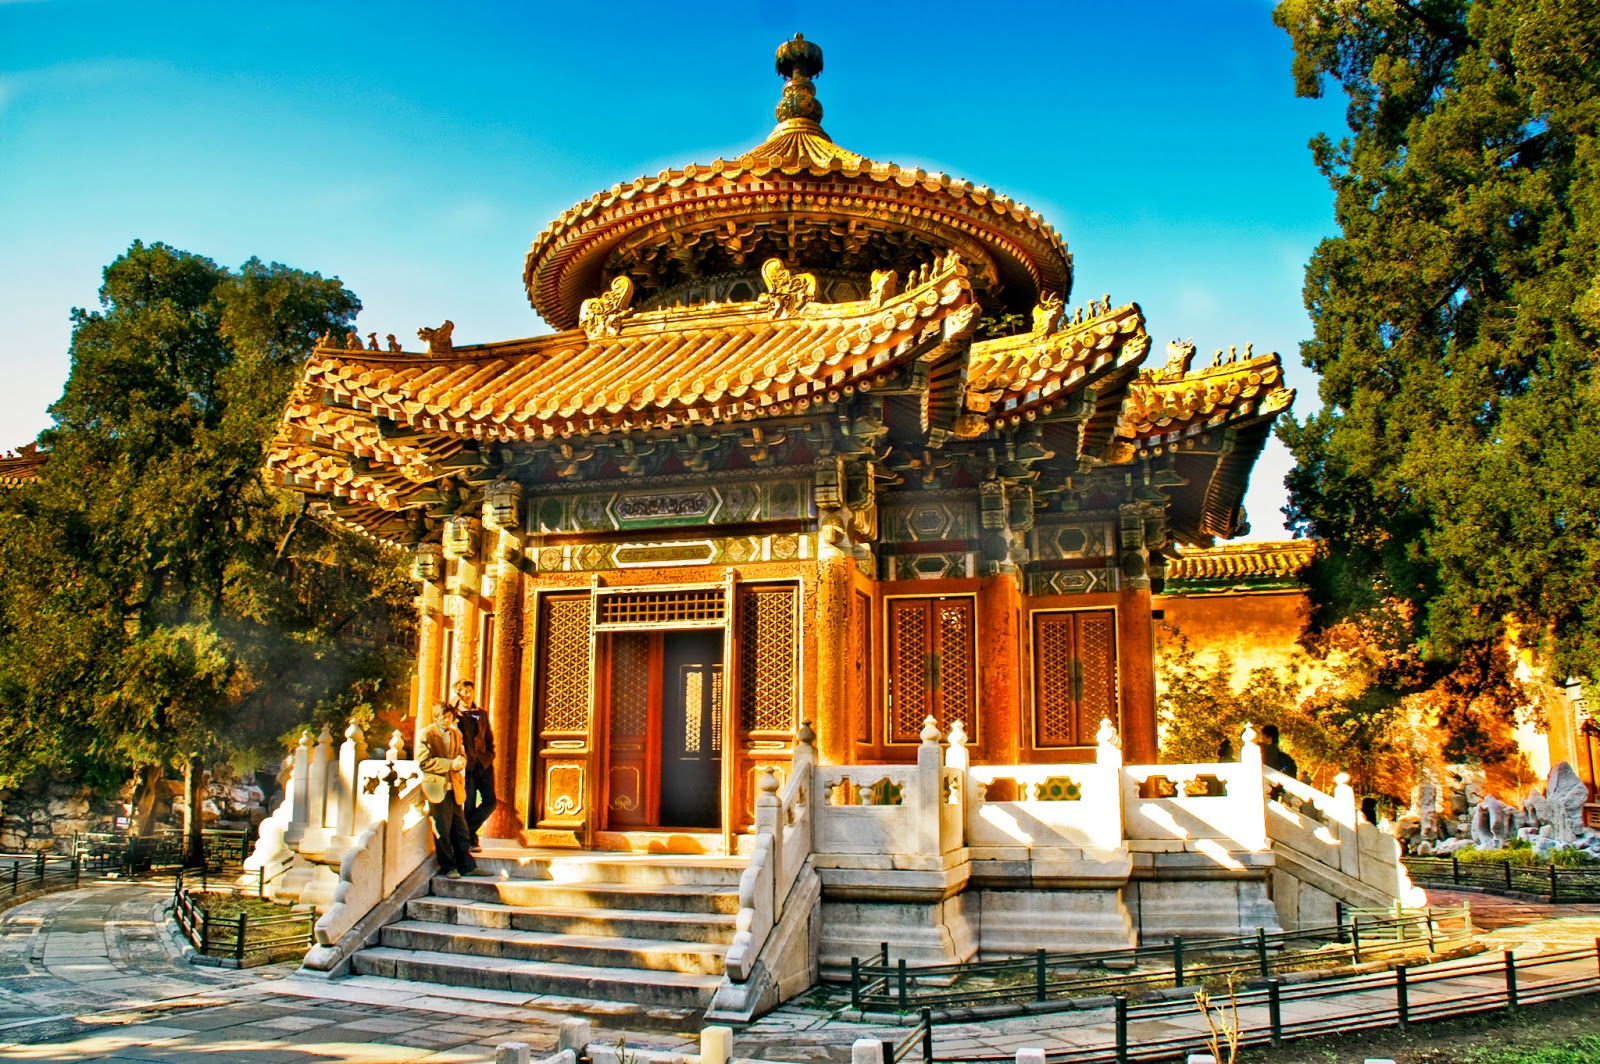 Taihedian Home Of Supreme Harmony Imperial Palace ...  |Imperial Palace Forbidden City Beijing China